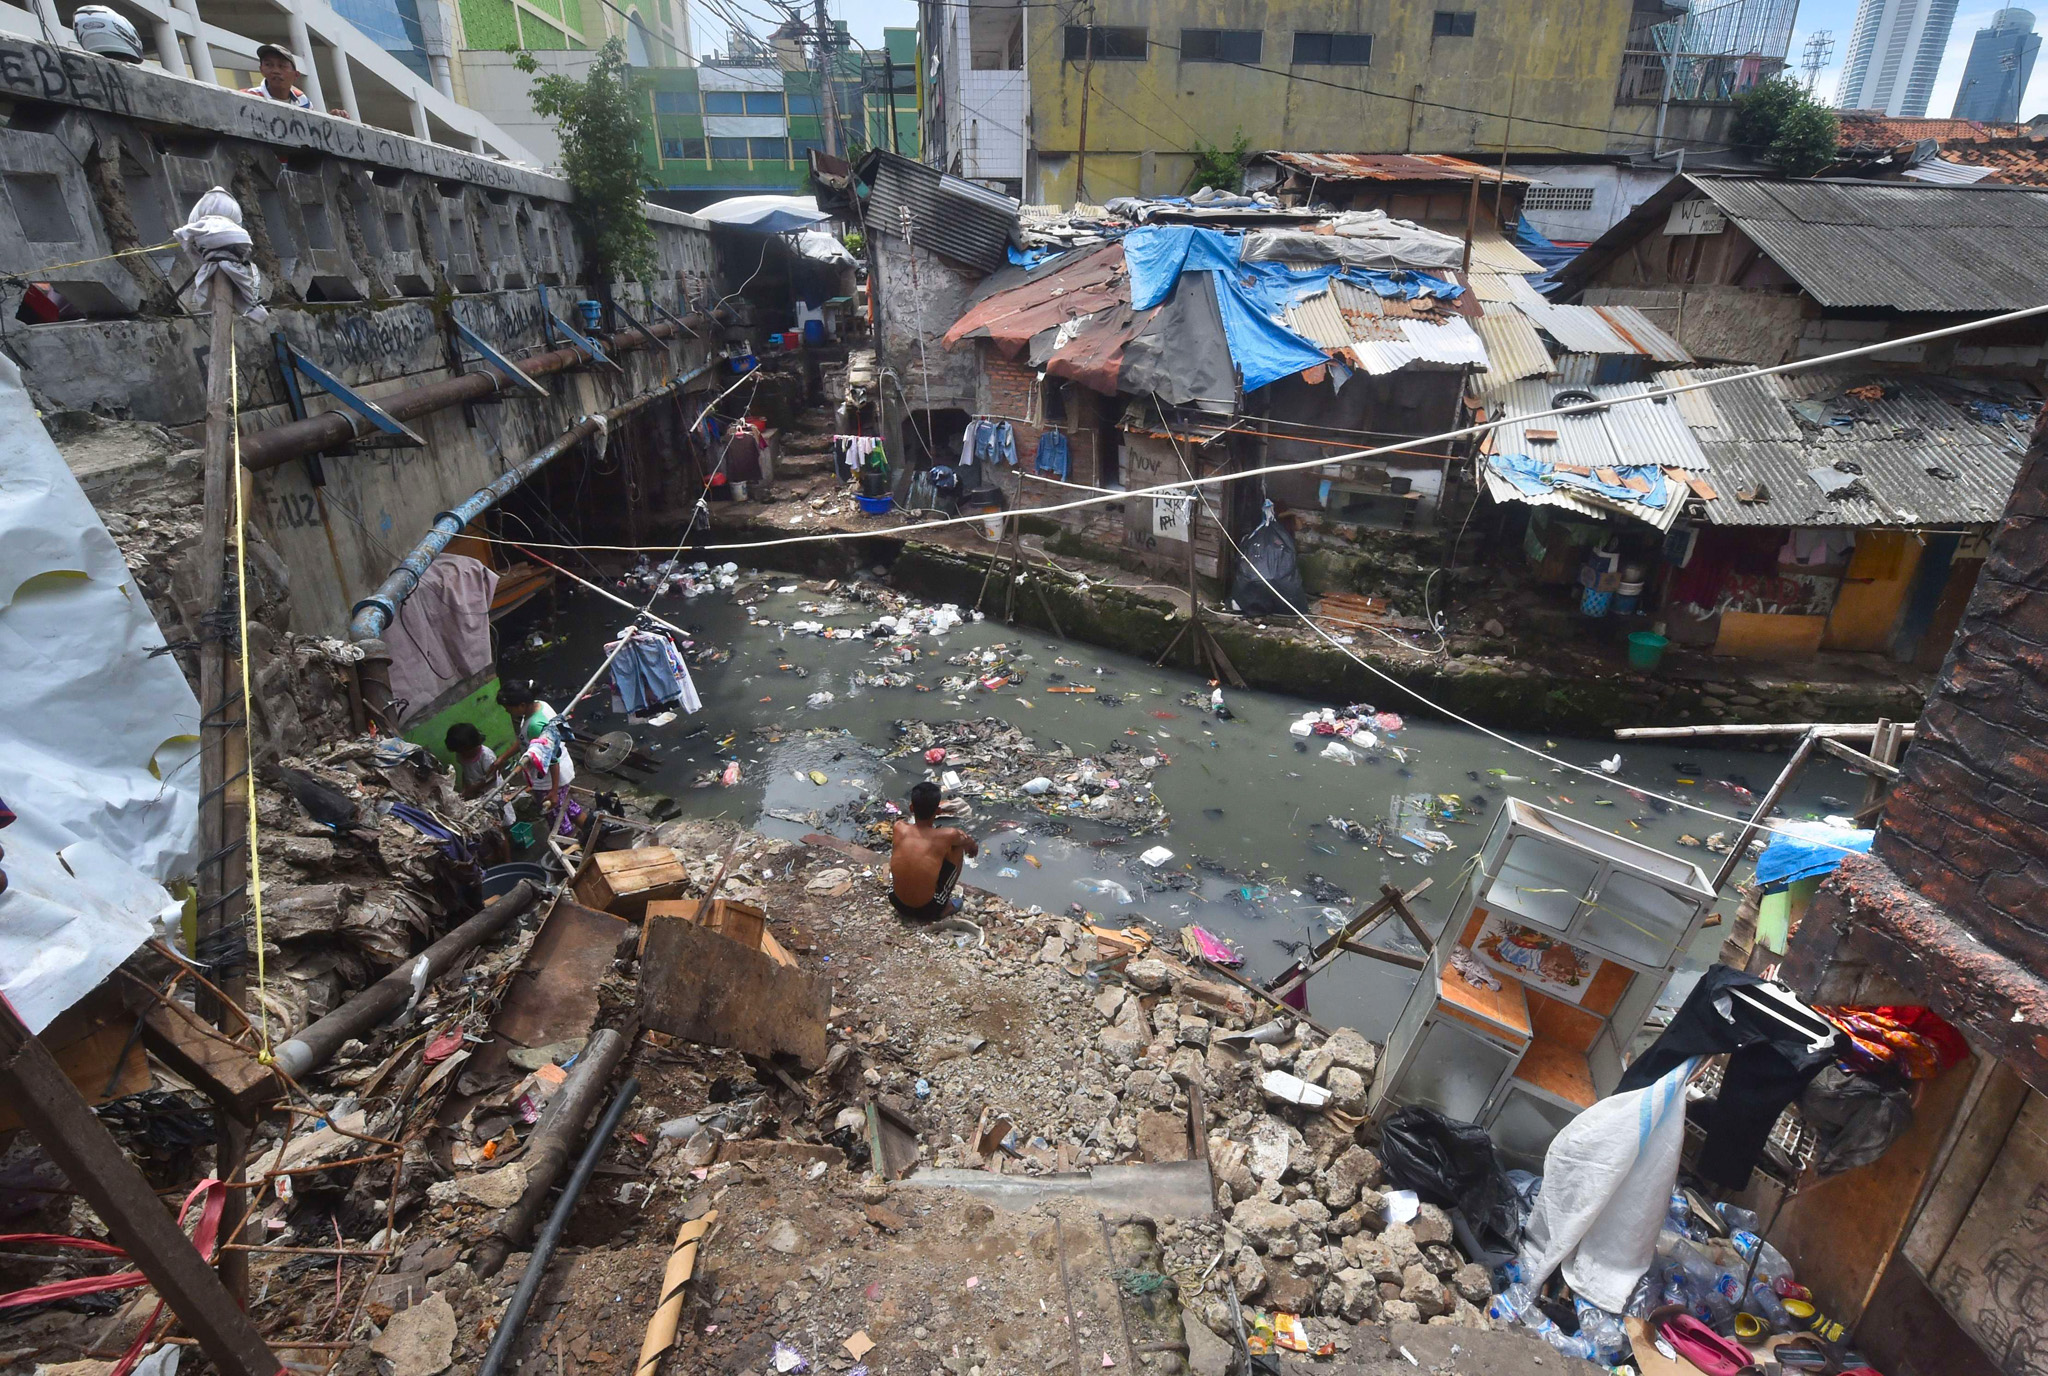 A man squats by the river banks...TOPSHOTS A man squats by the river banks next to shanty houses in downtown Jakarta on April 7, 2015